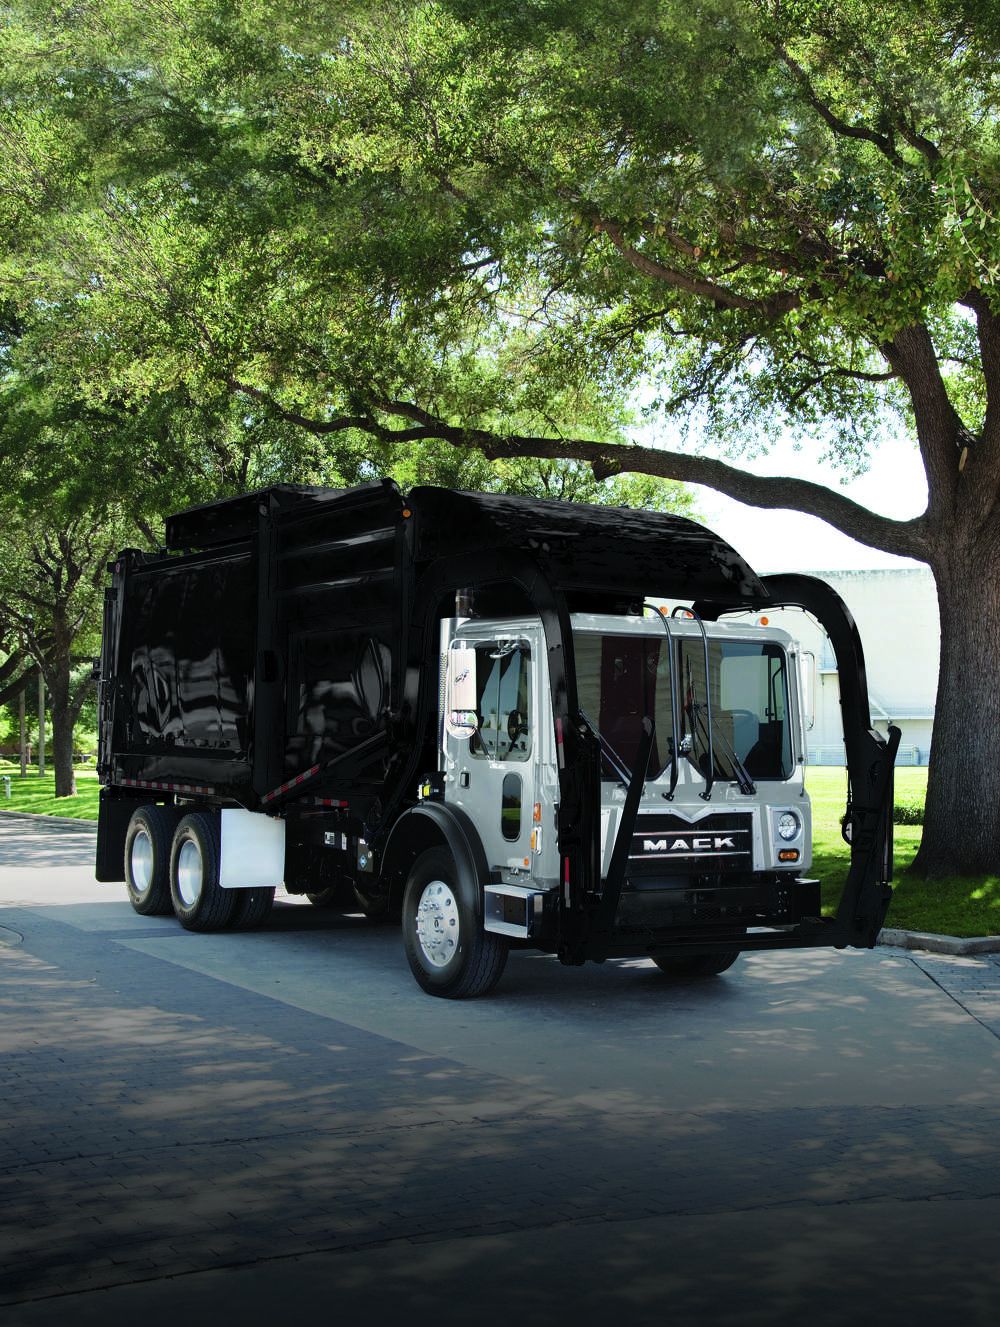 Mack Over The Air (OTA) is now available on refuse vehicles including the Mack Granite® and TerraPro (above) models. Mack OTA allows customers to update software without disrupting their schedules, improving efficiency and increasing uptime. Mack OTA will be available on Mack LR models with the launch of GuardDog Connect for LR models beginning in Q3.